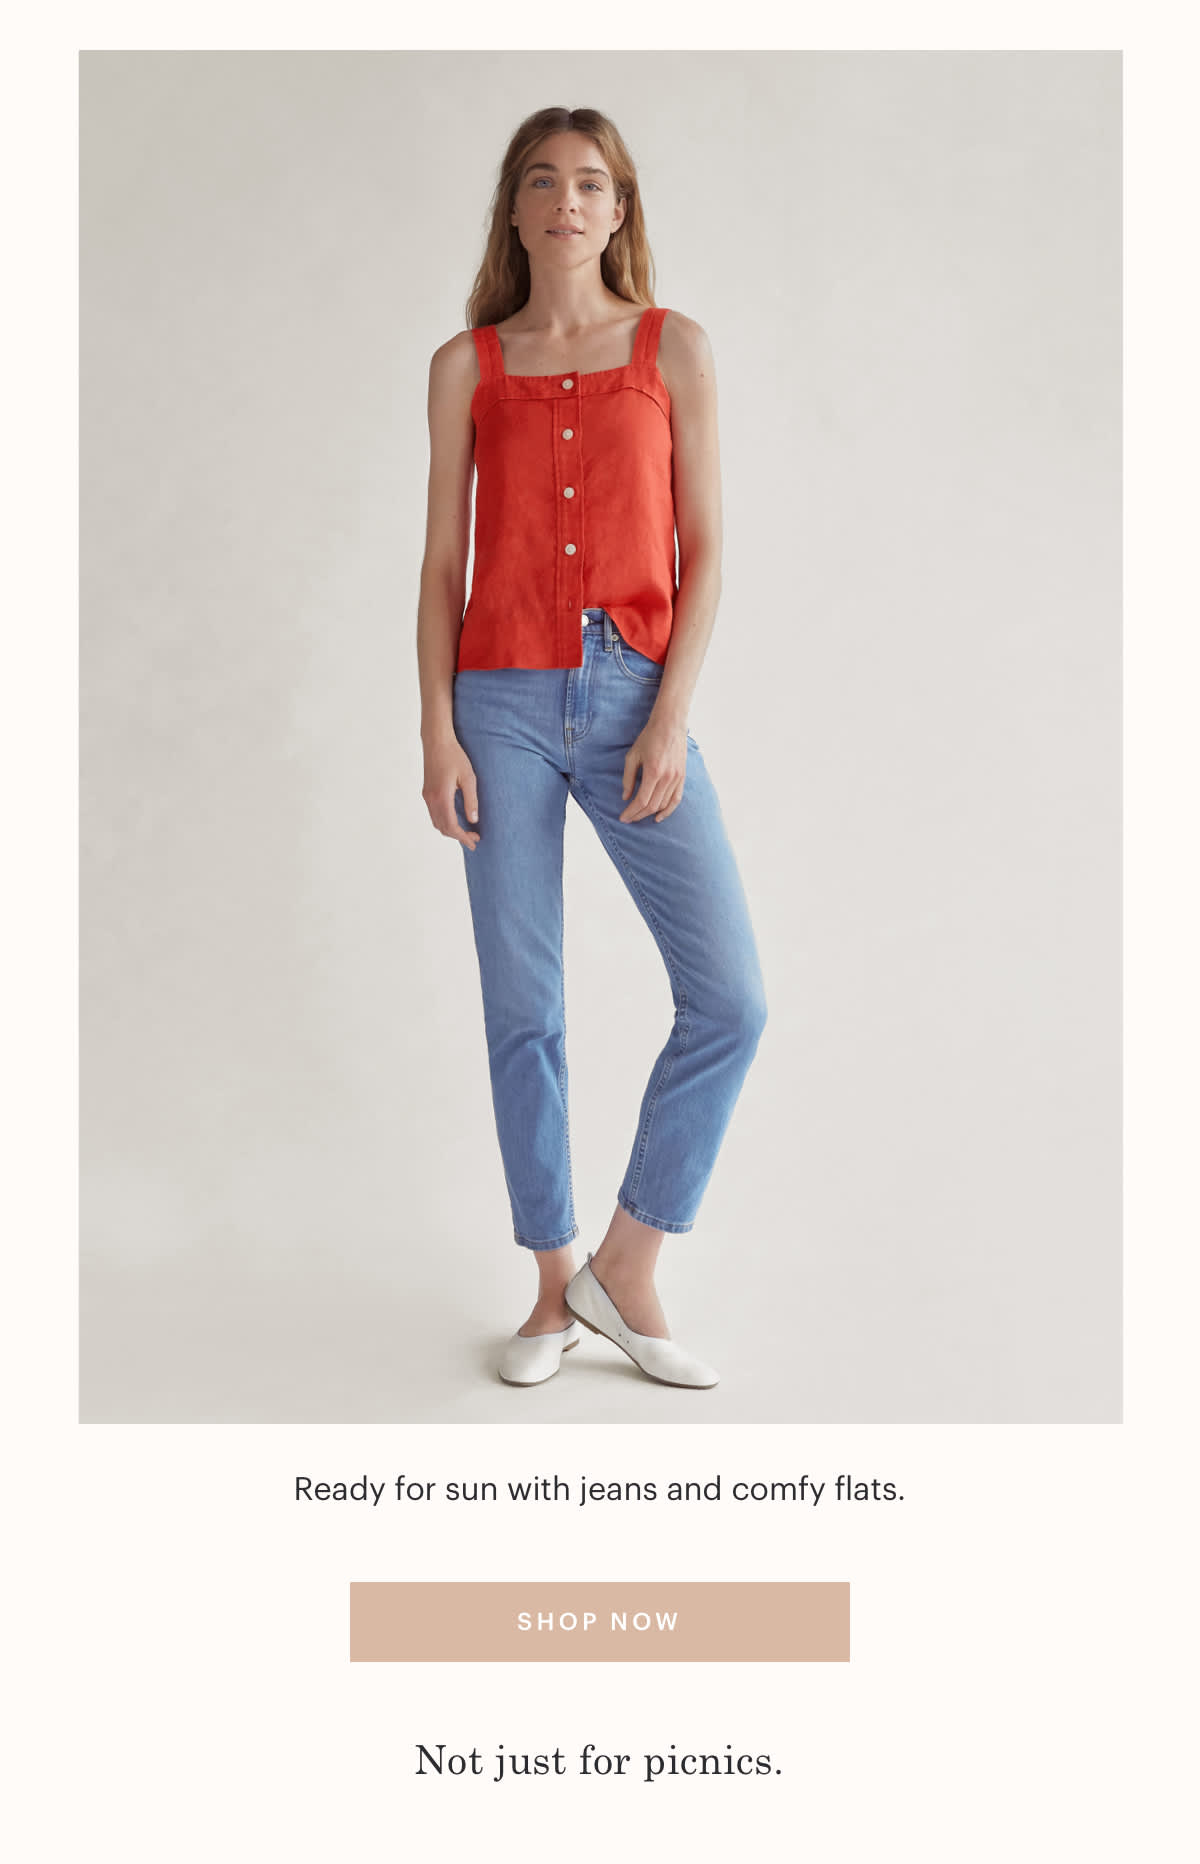 Ready for sun with jeans and comfy flats.